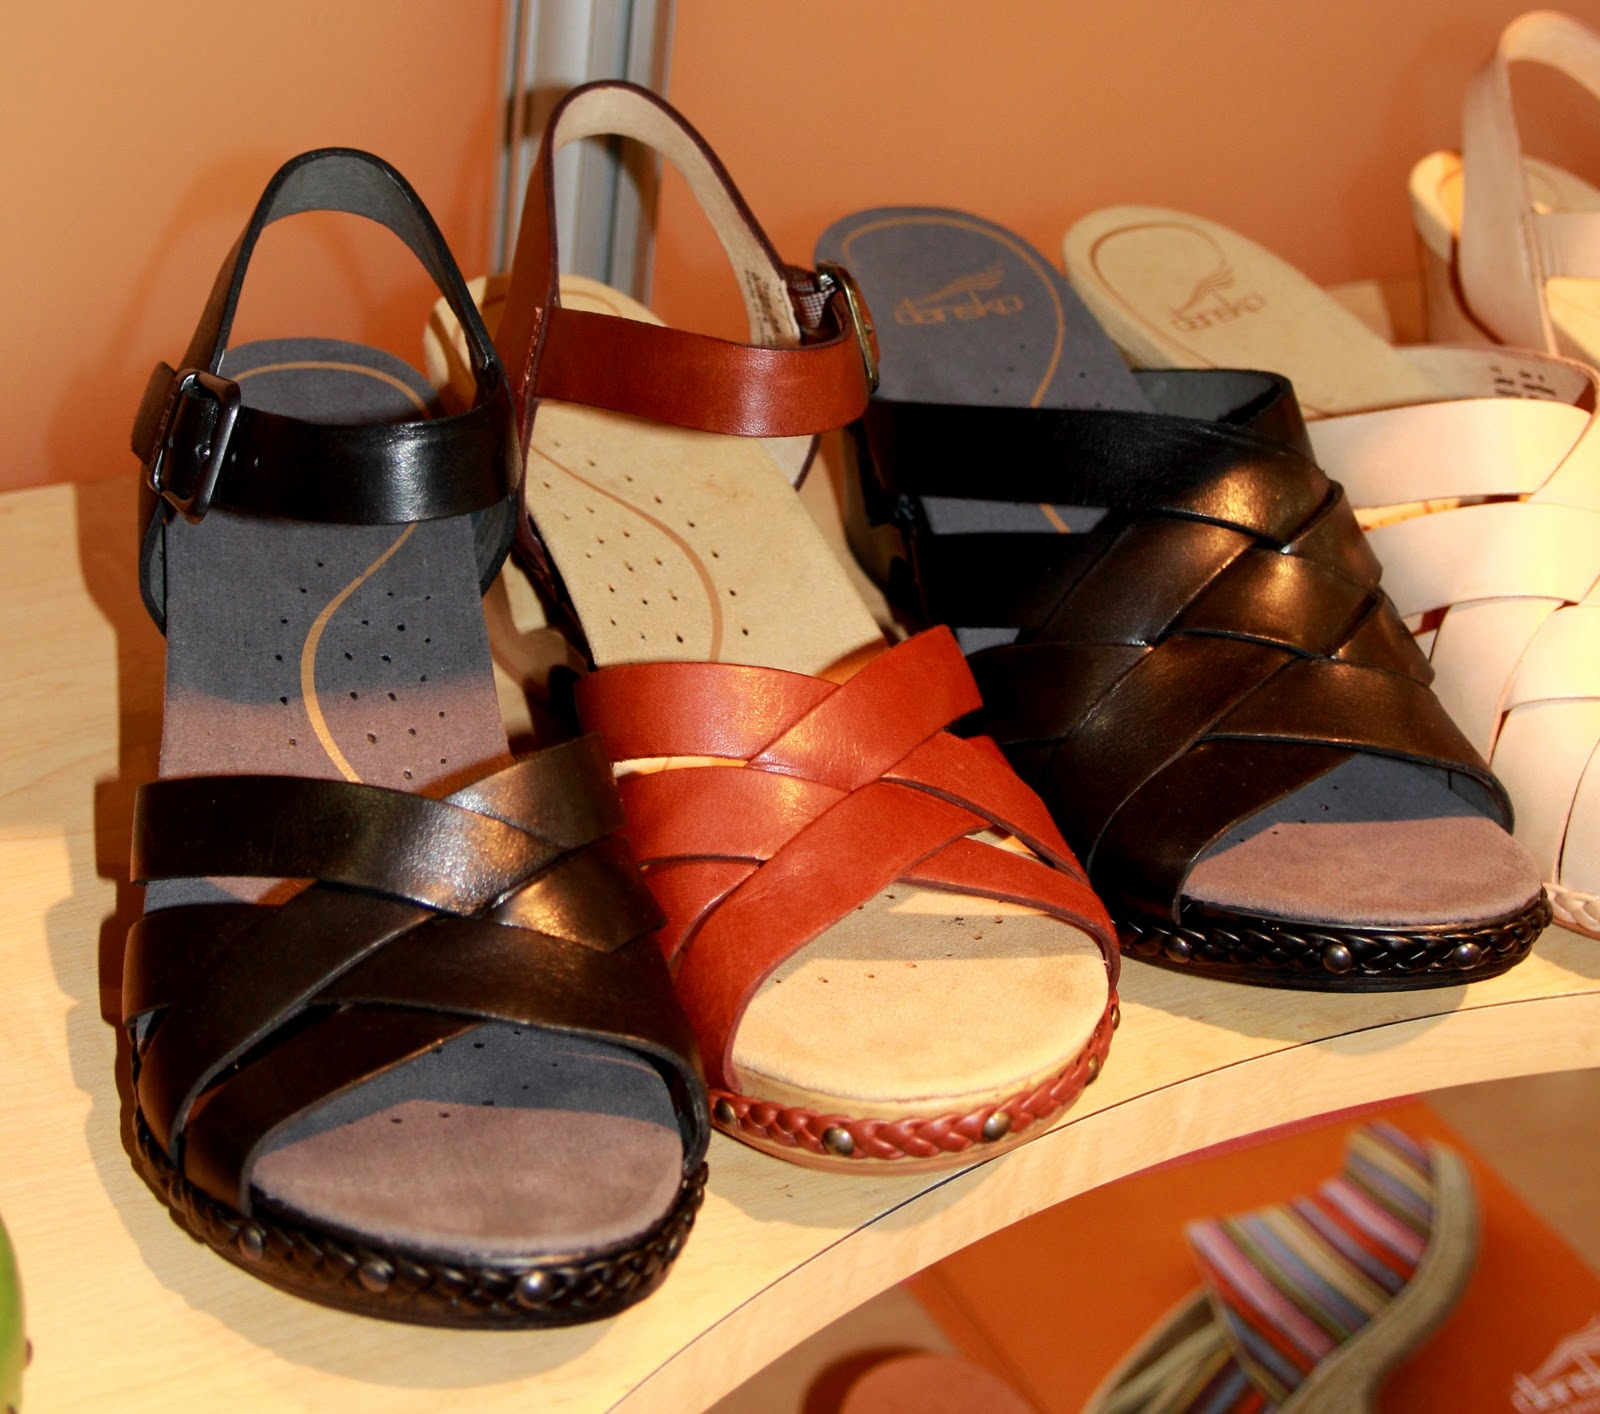 Tru-$130 woven leather uppers slingbacks-slides (Tory-Black, Natural  $130)-all can be the workhorse for Spring-versatile